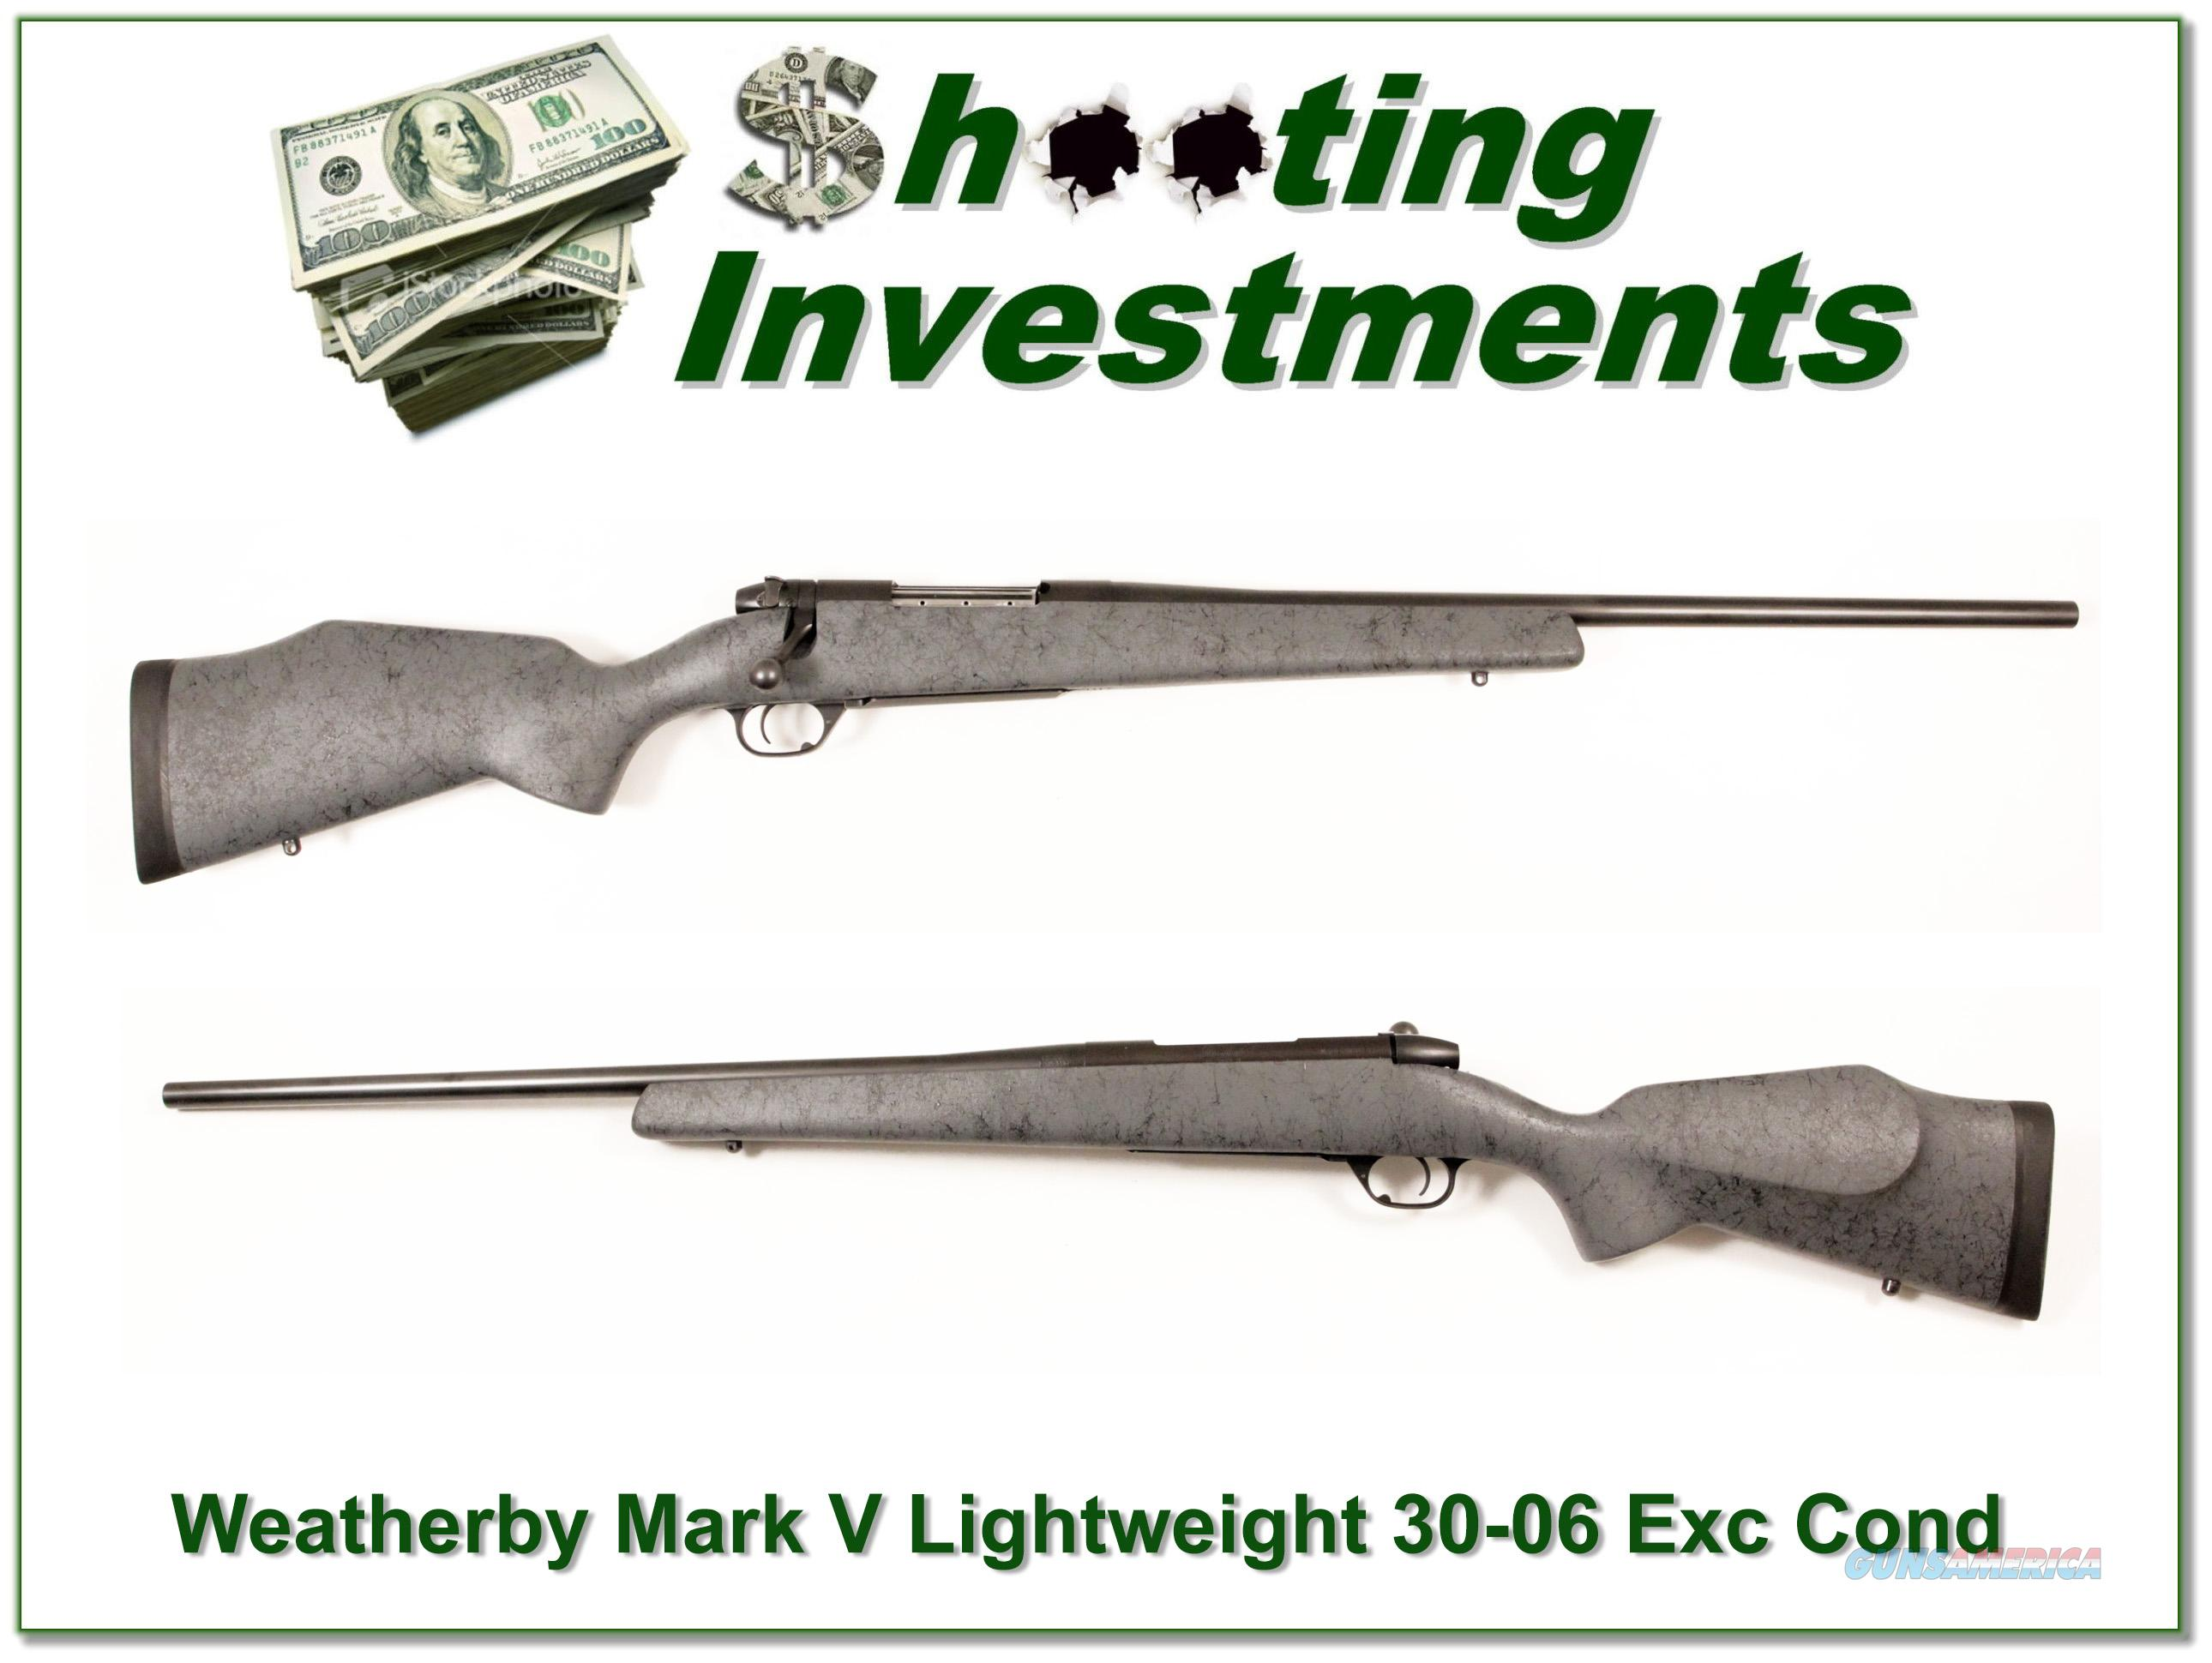 Weatherby Mark V Light Weigh 30-06 Exc Cond  Guns > Rifles > Weatherby Rifles > Sporting